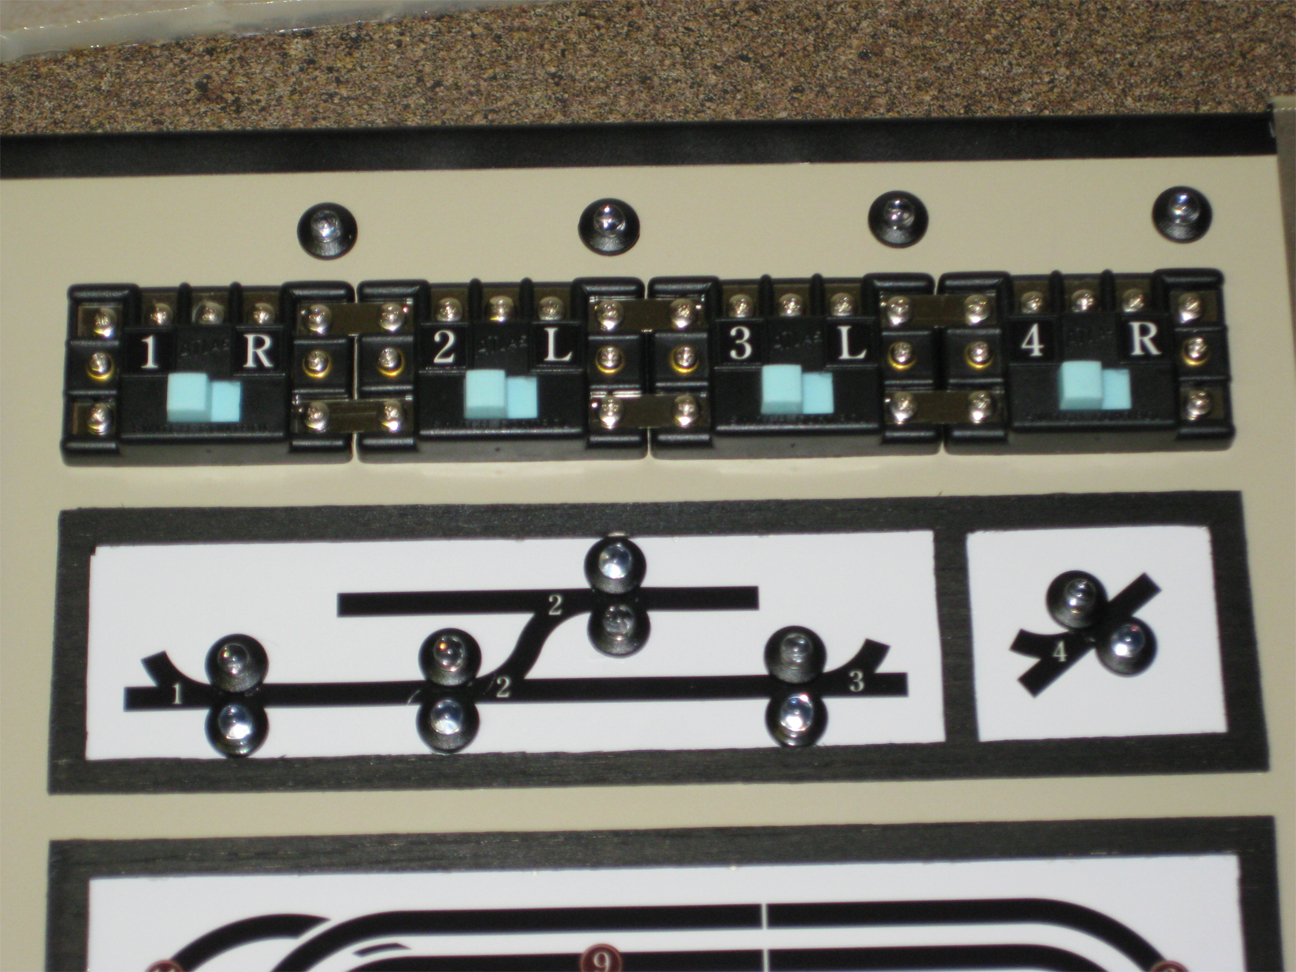 atlas switch control wiring atlas image wiring diagram ty s model railroad control panel on atlas switch control wiring